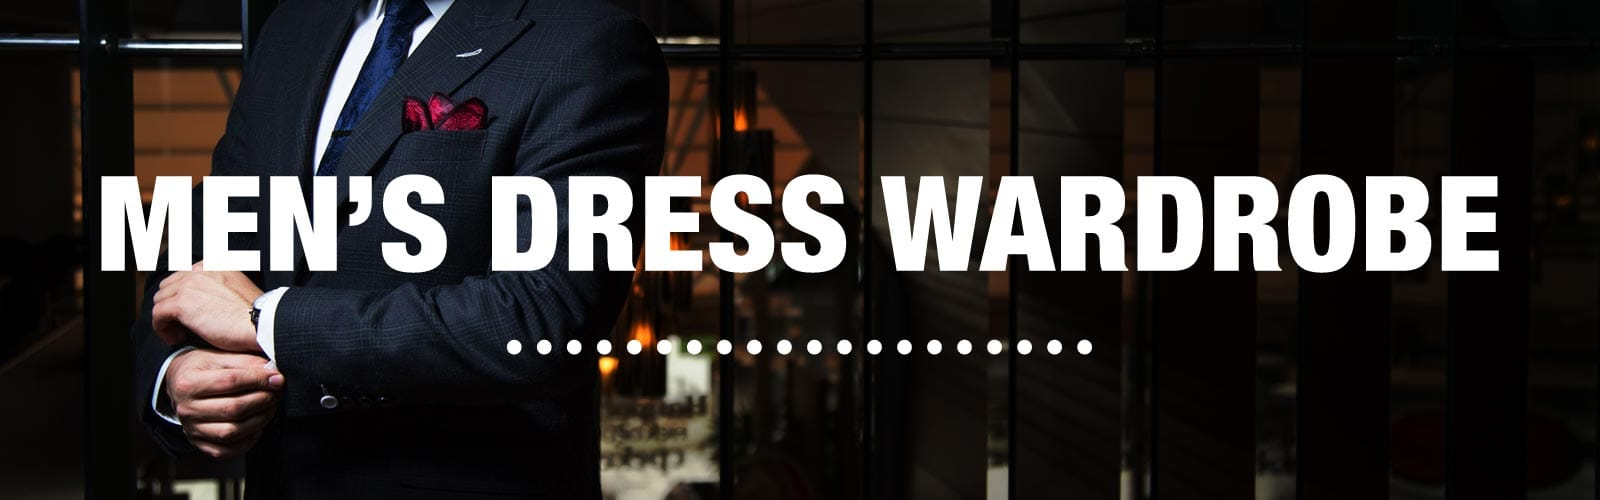 Men's Dress Wardrobe Guide